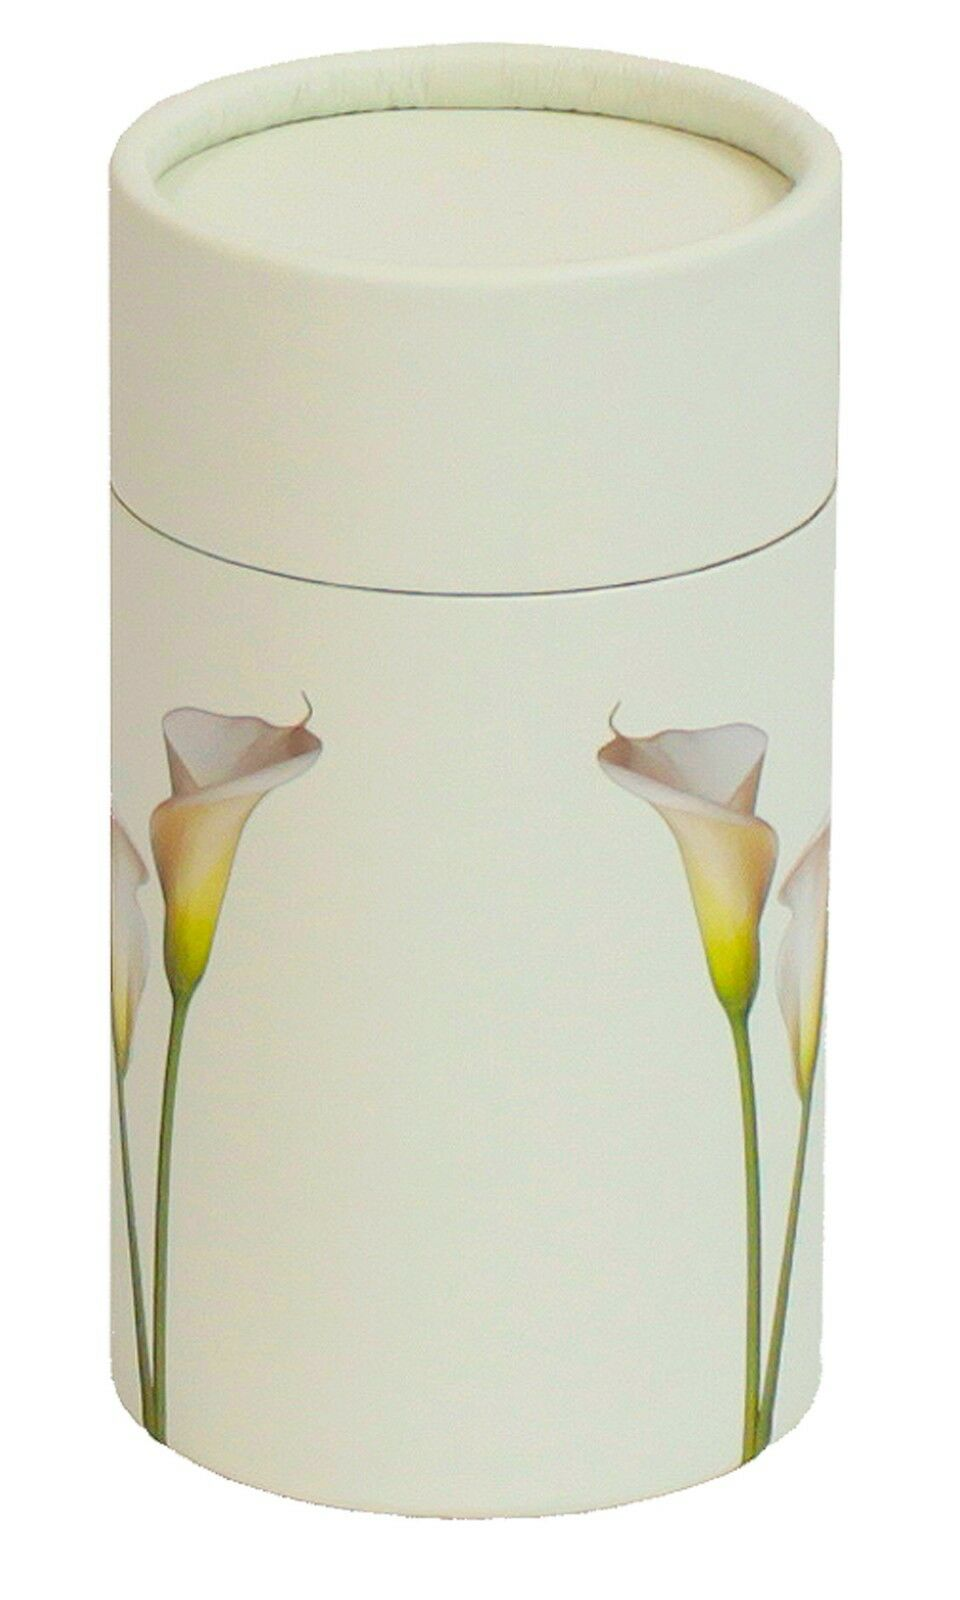 Biodegradable Lily Ash Scattering Tube Funeral Cremation Urn - 20 cubic inches